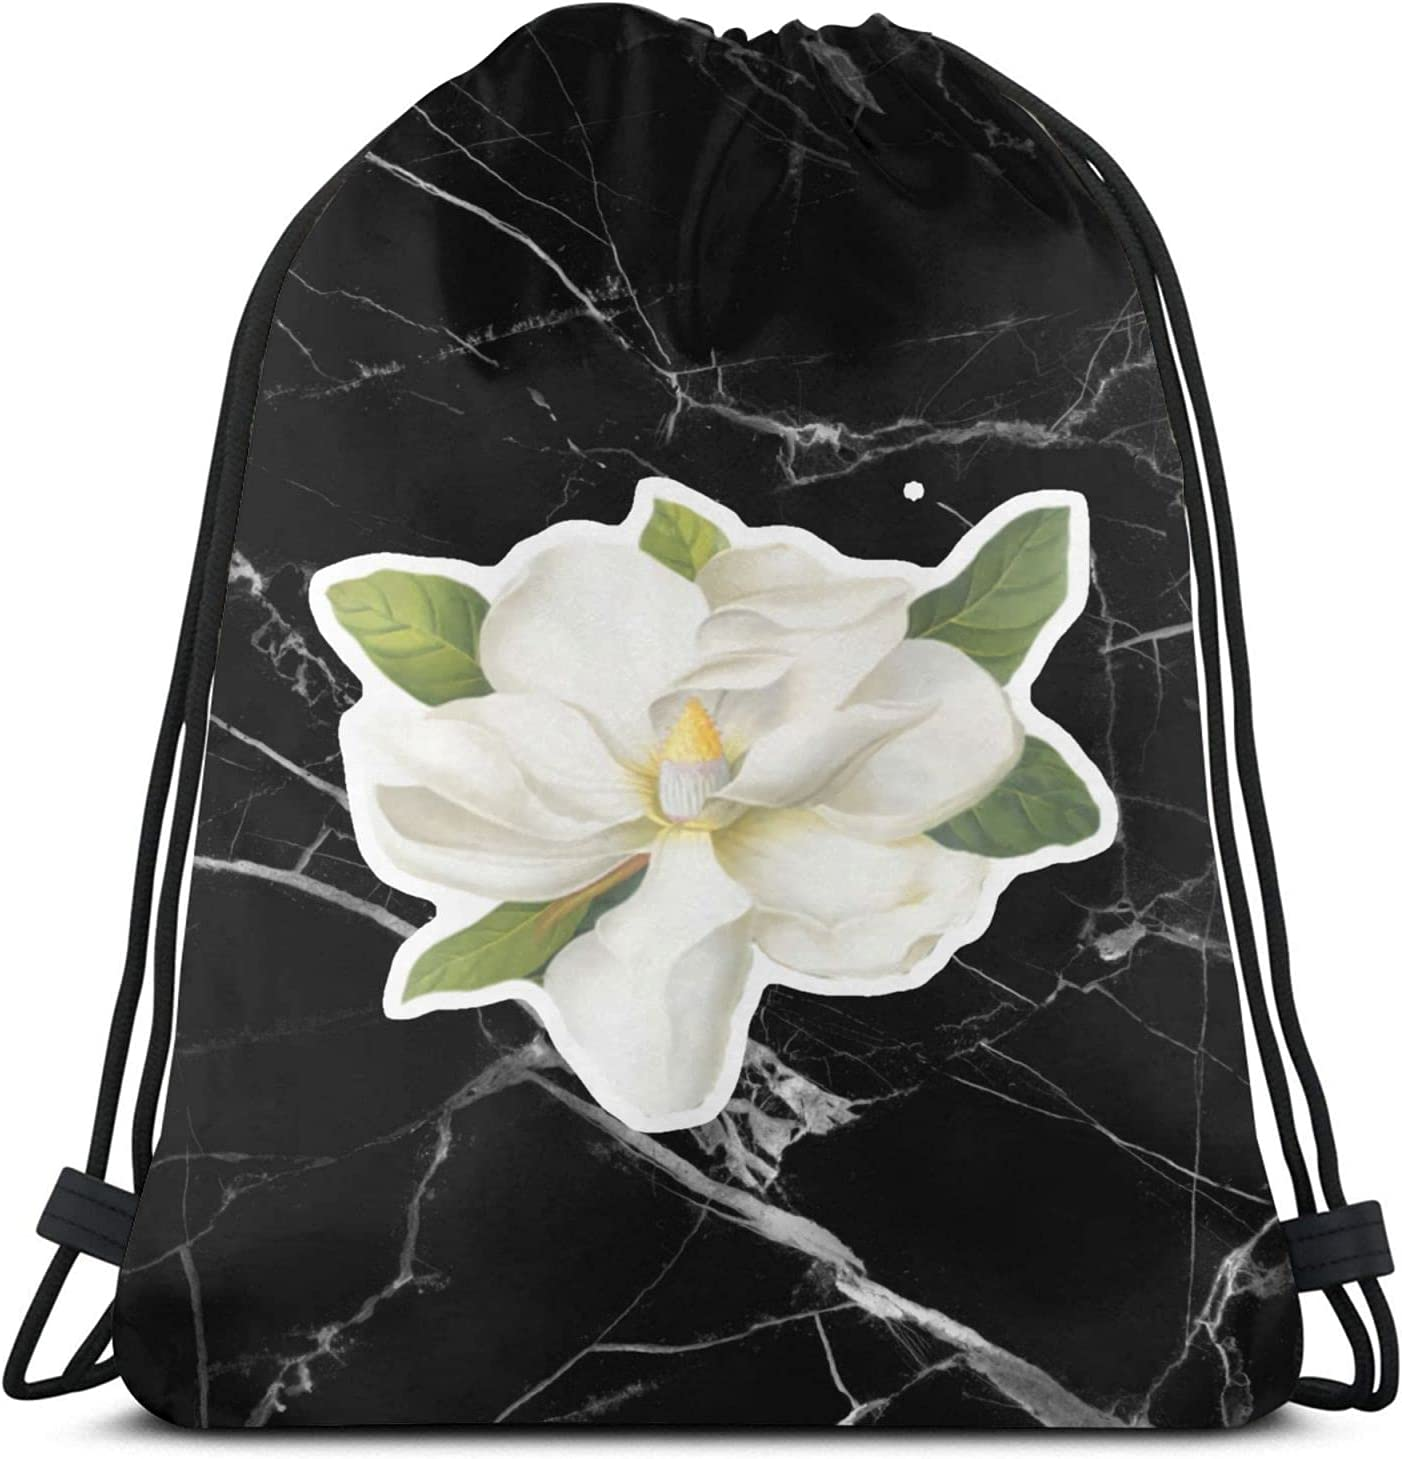 Magnolia Blossom Drawstring Backpack Sackpac excellence Max 67% OFF Sport Bag Workout